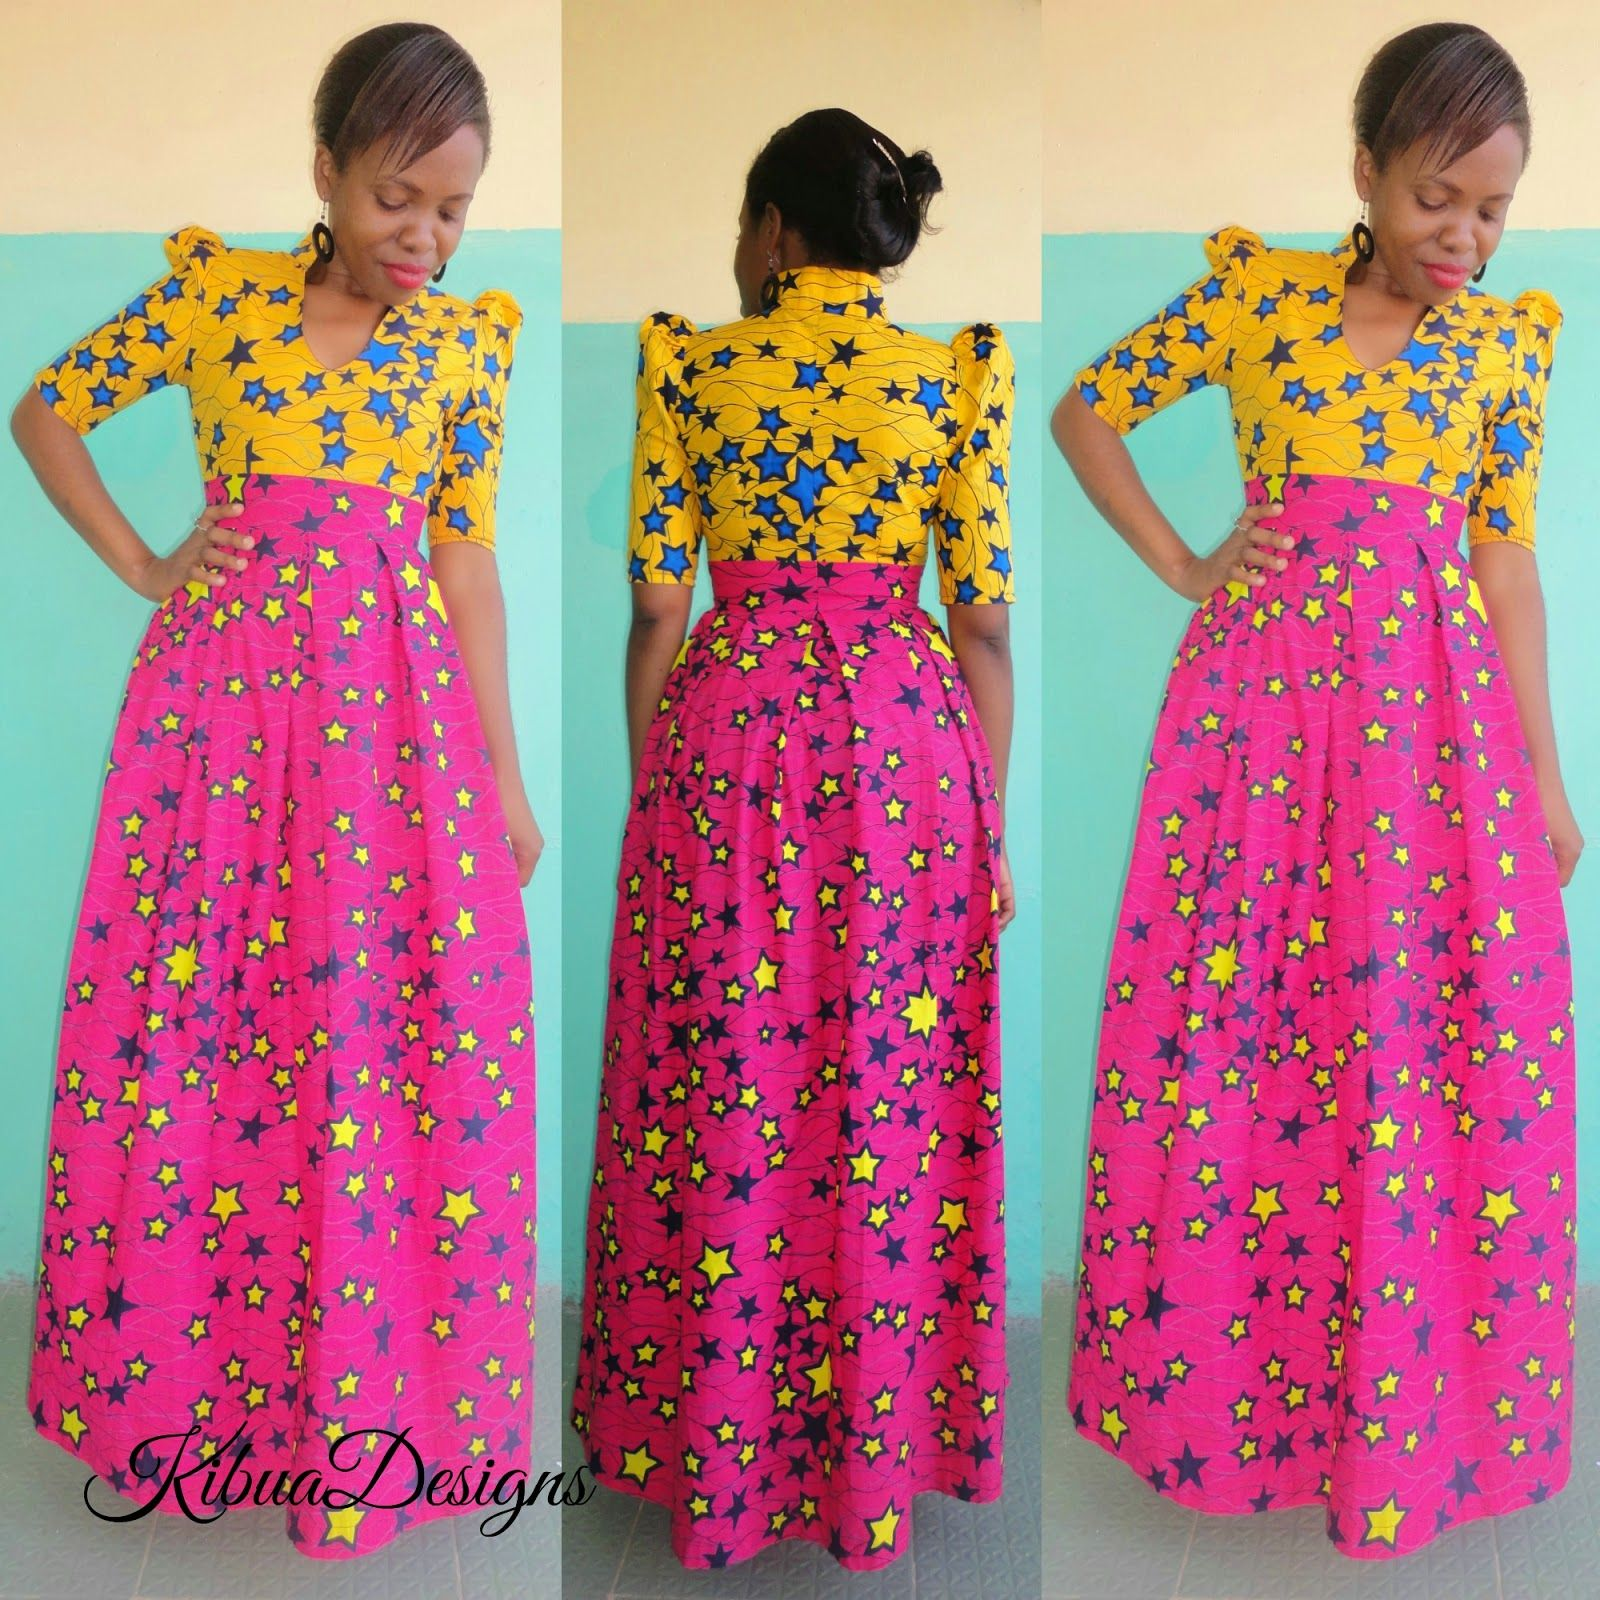 Kibua Designs For African Fashion LONG KITENGE DRESS